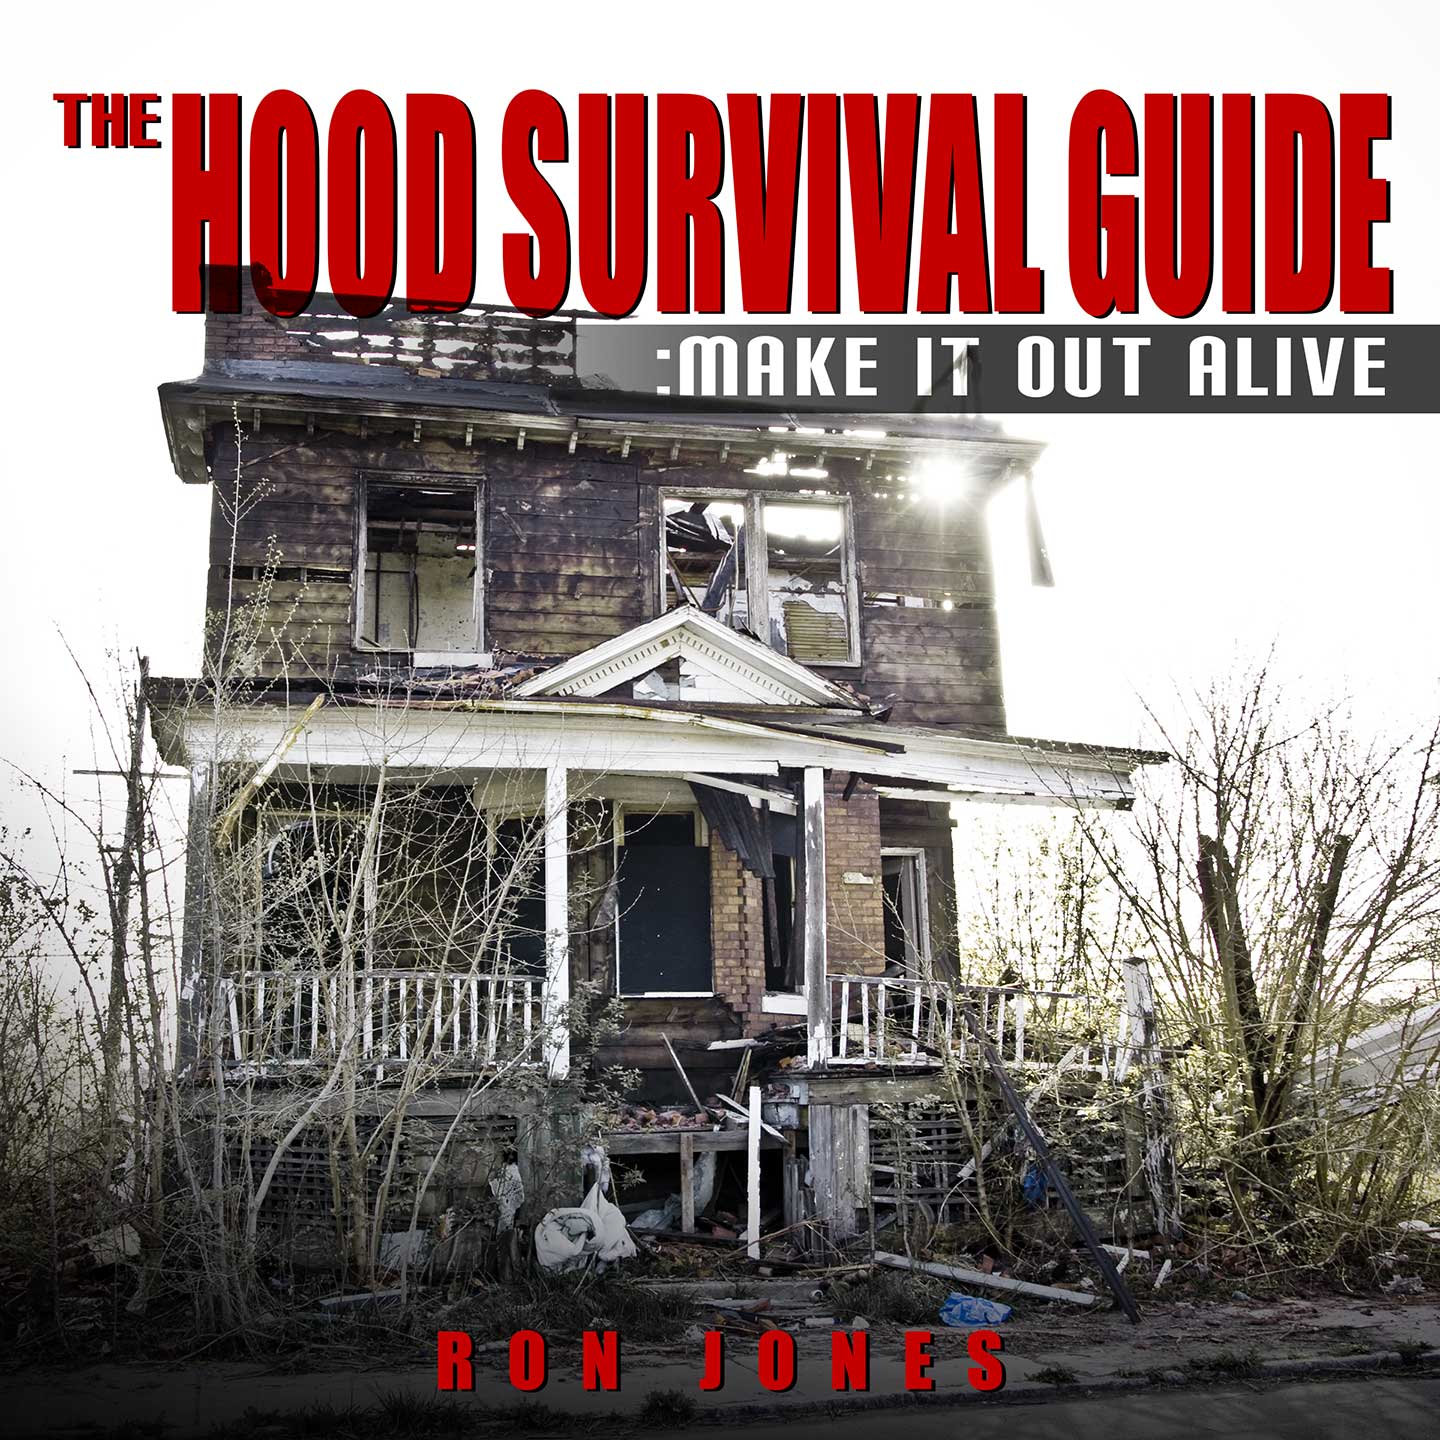 The Hood Survival Guide Audiobook Cover Design